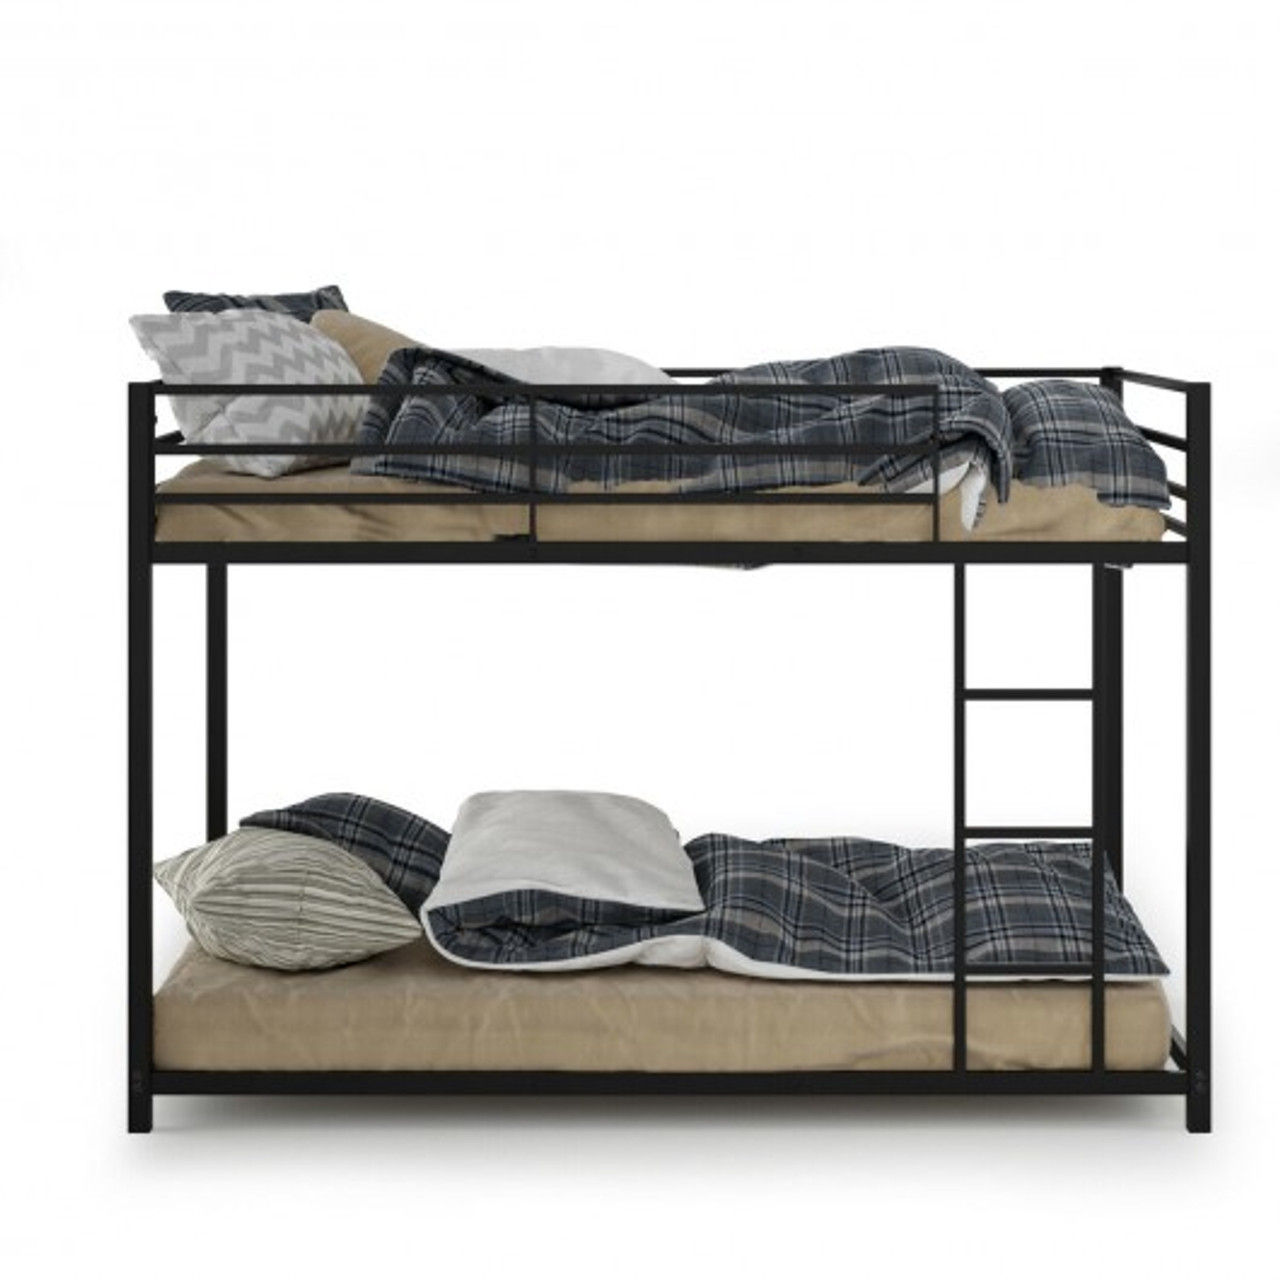 Hw65778 Metal Bunk Bed Twin Over Classic Frame